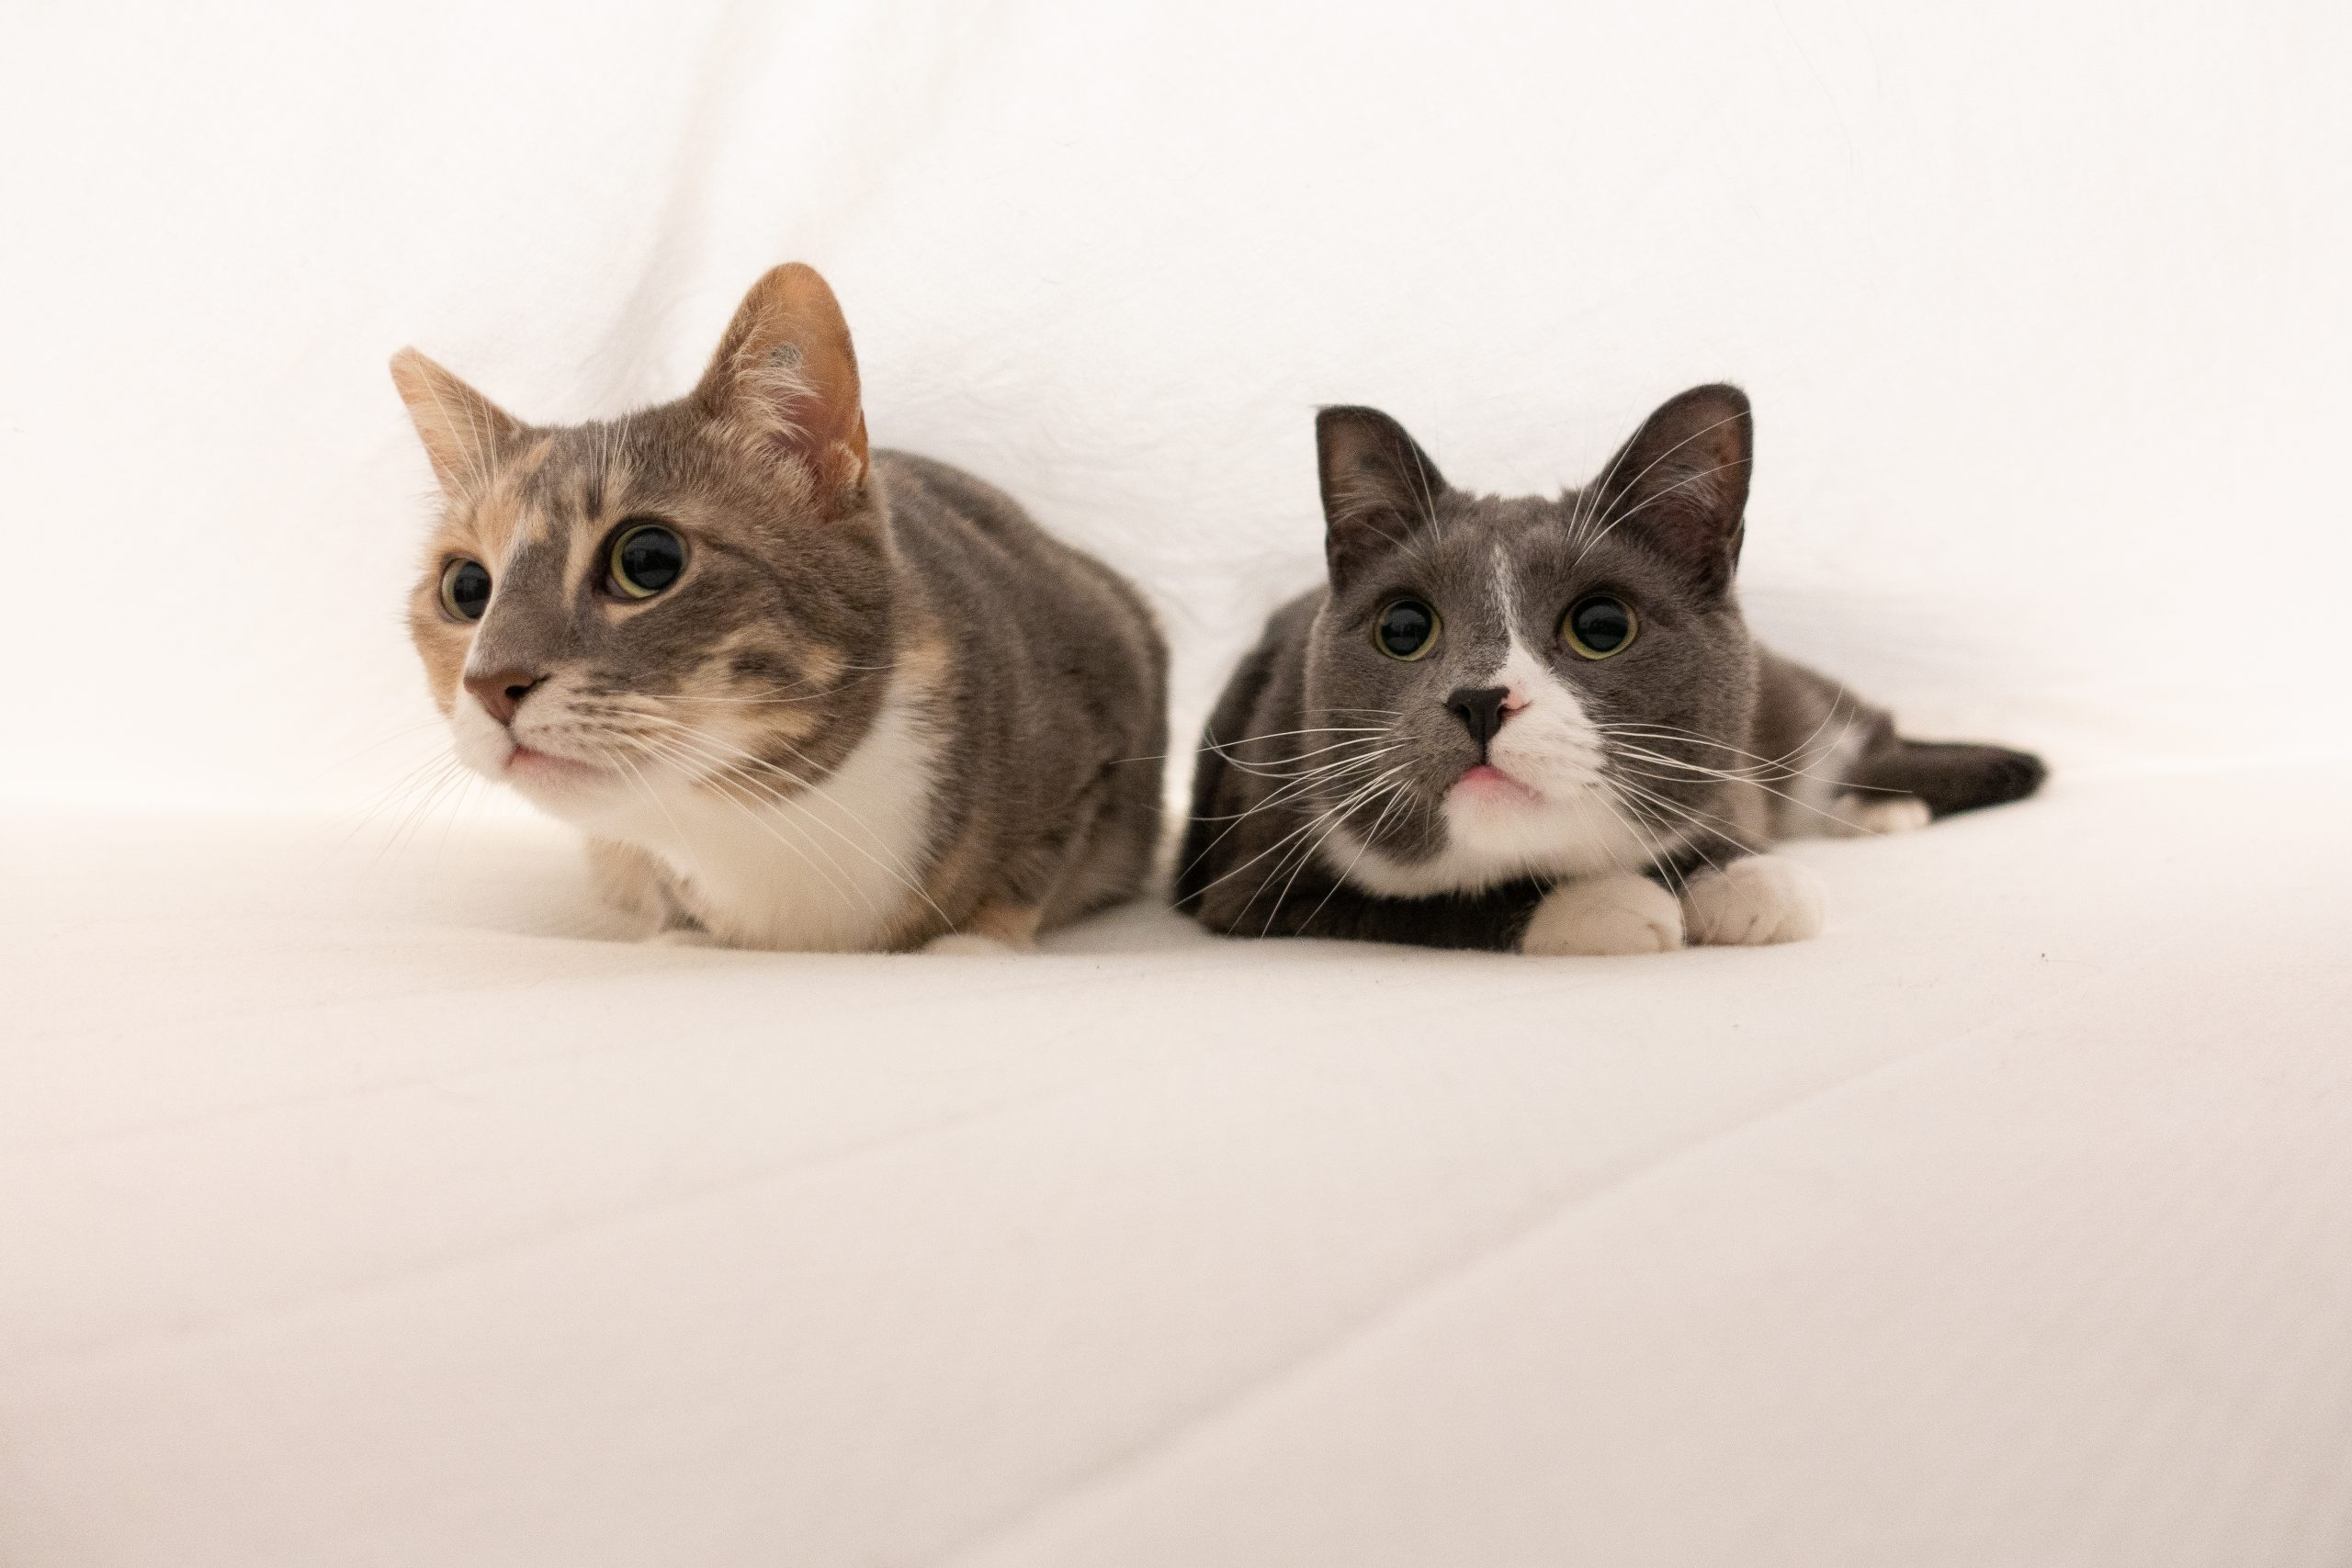 A photo of two cats under the bedsheets, looking playful and cute.